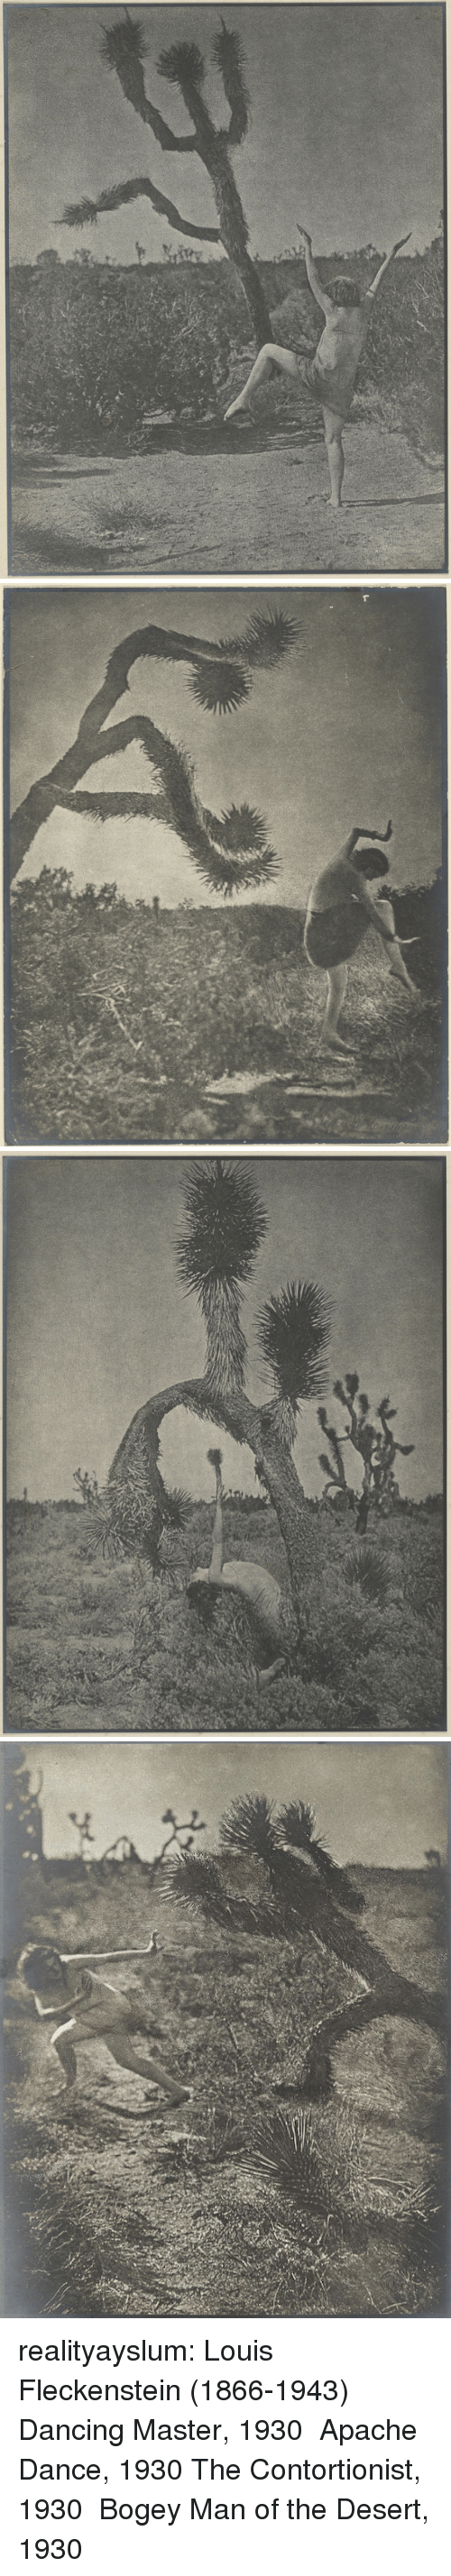 Dancing, Tumblr, and American: realityayslum:   Louis Fleckenstein (1866-1943) Dancing Master, 1930  Apache Dance, 1930   The Contortionist, 1930  Bogey Man of the Desert, 1930